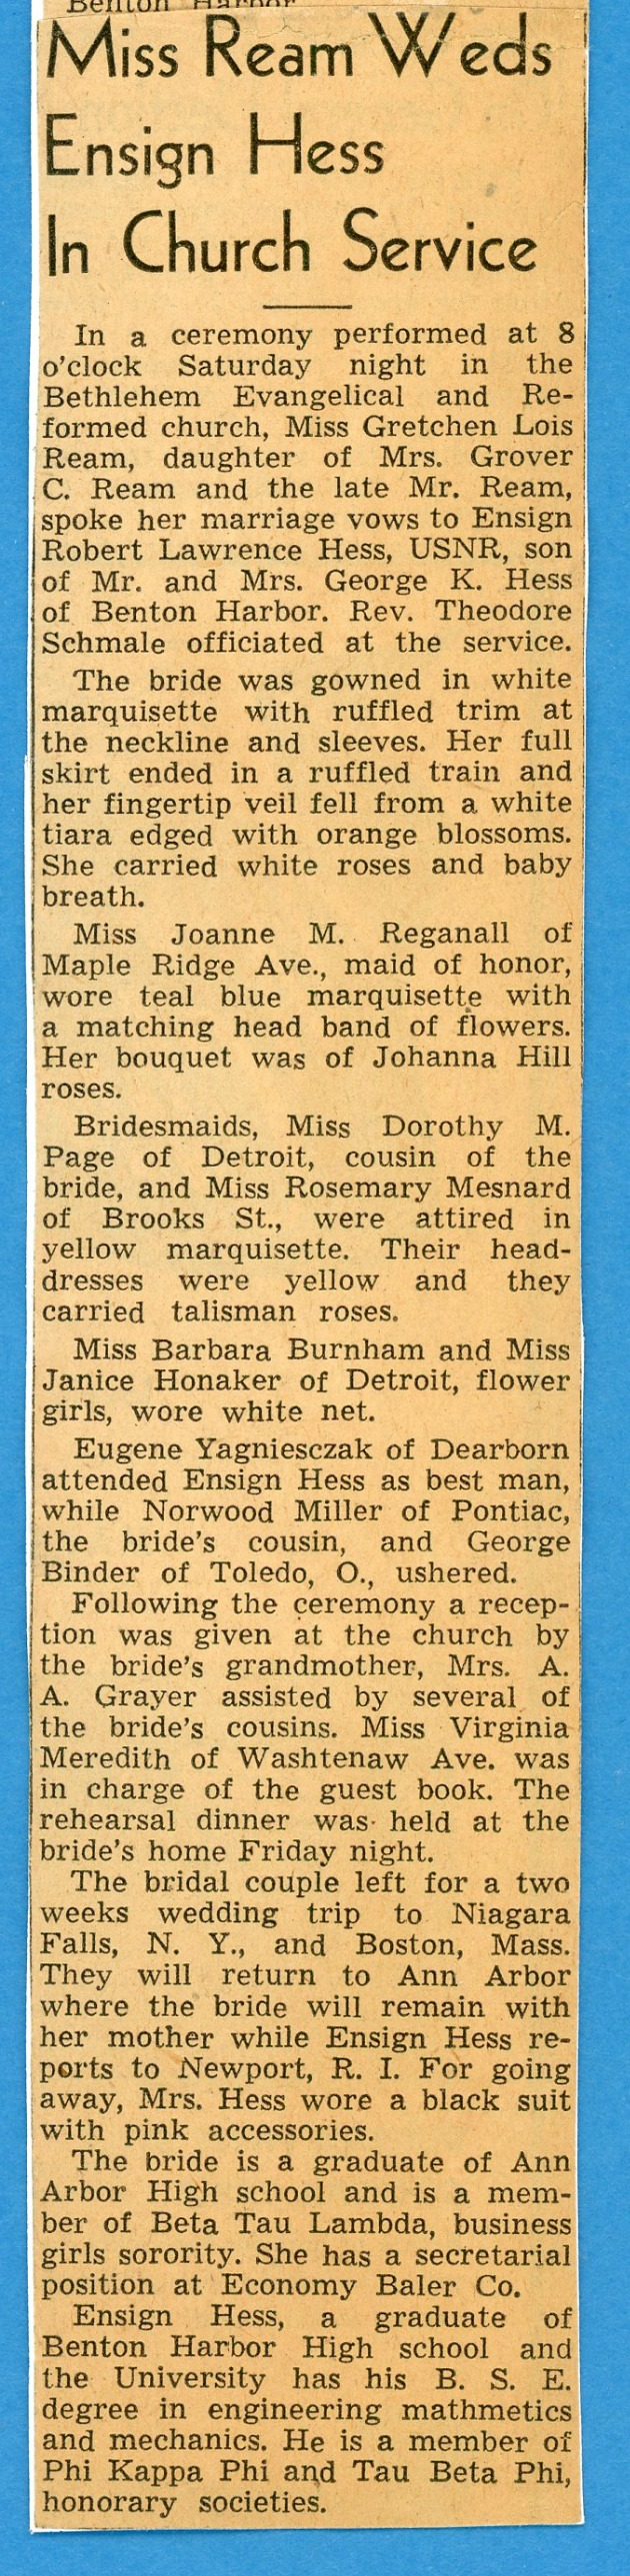 Robert and Gretchen wedding announcement Feb. 1945 part 2